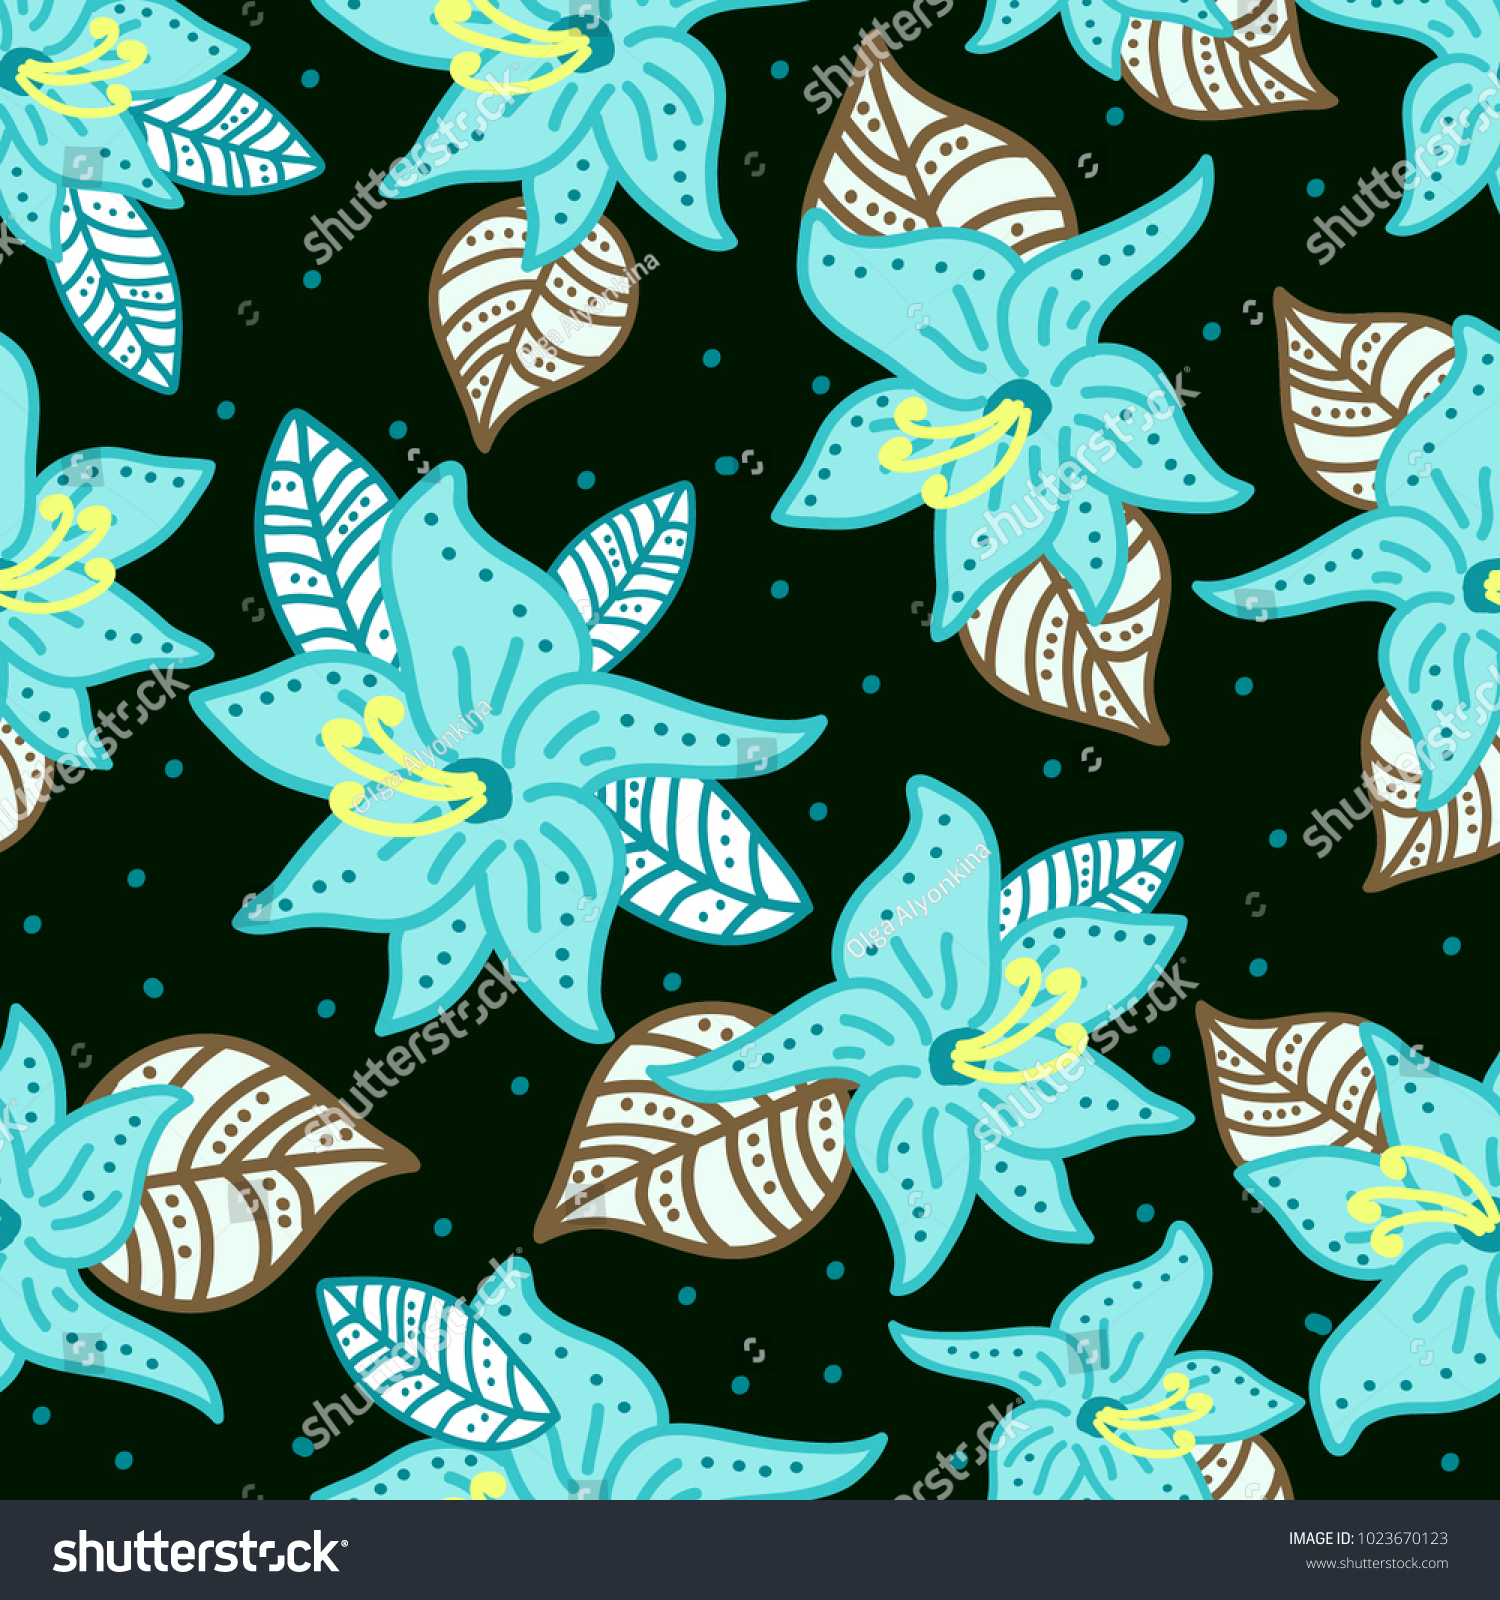 Floral pattern large blue flowers similar stock vector royalty free floral pattern with large blue flowers similar to lilies on dark purple background izmirmasajfo